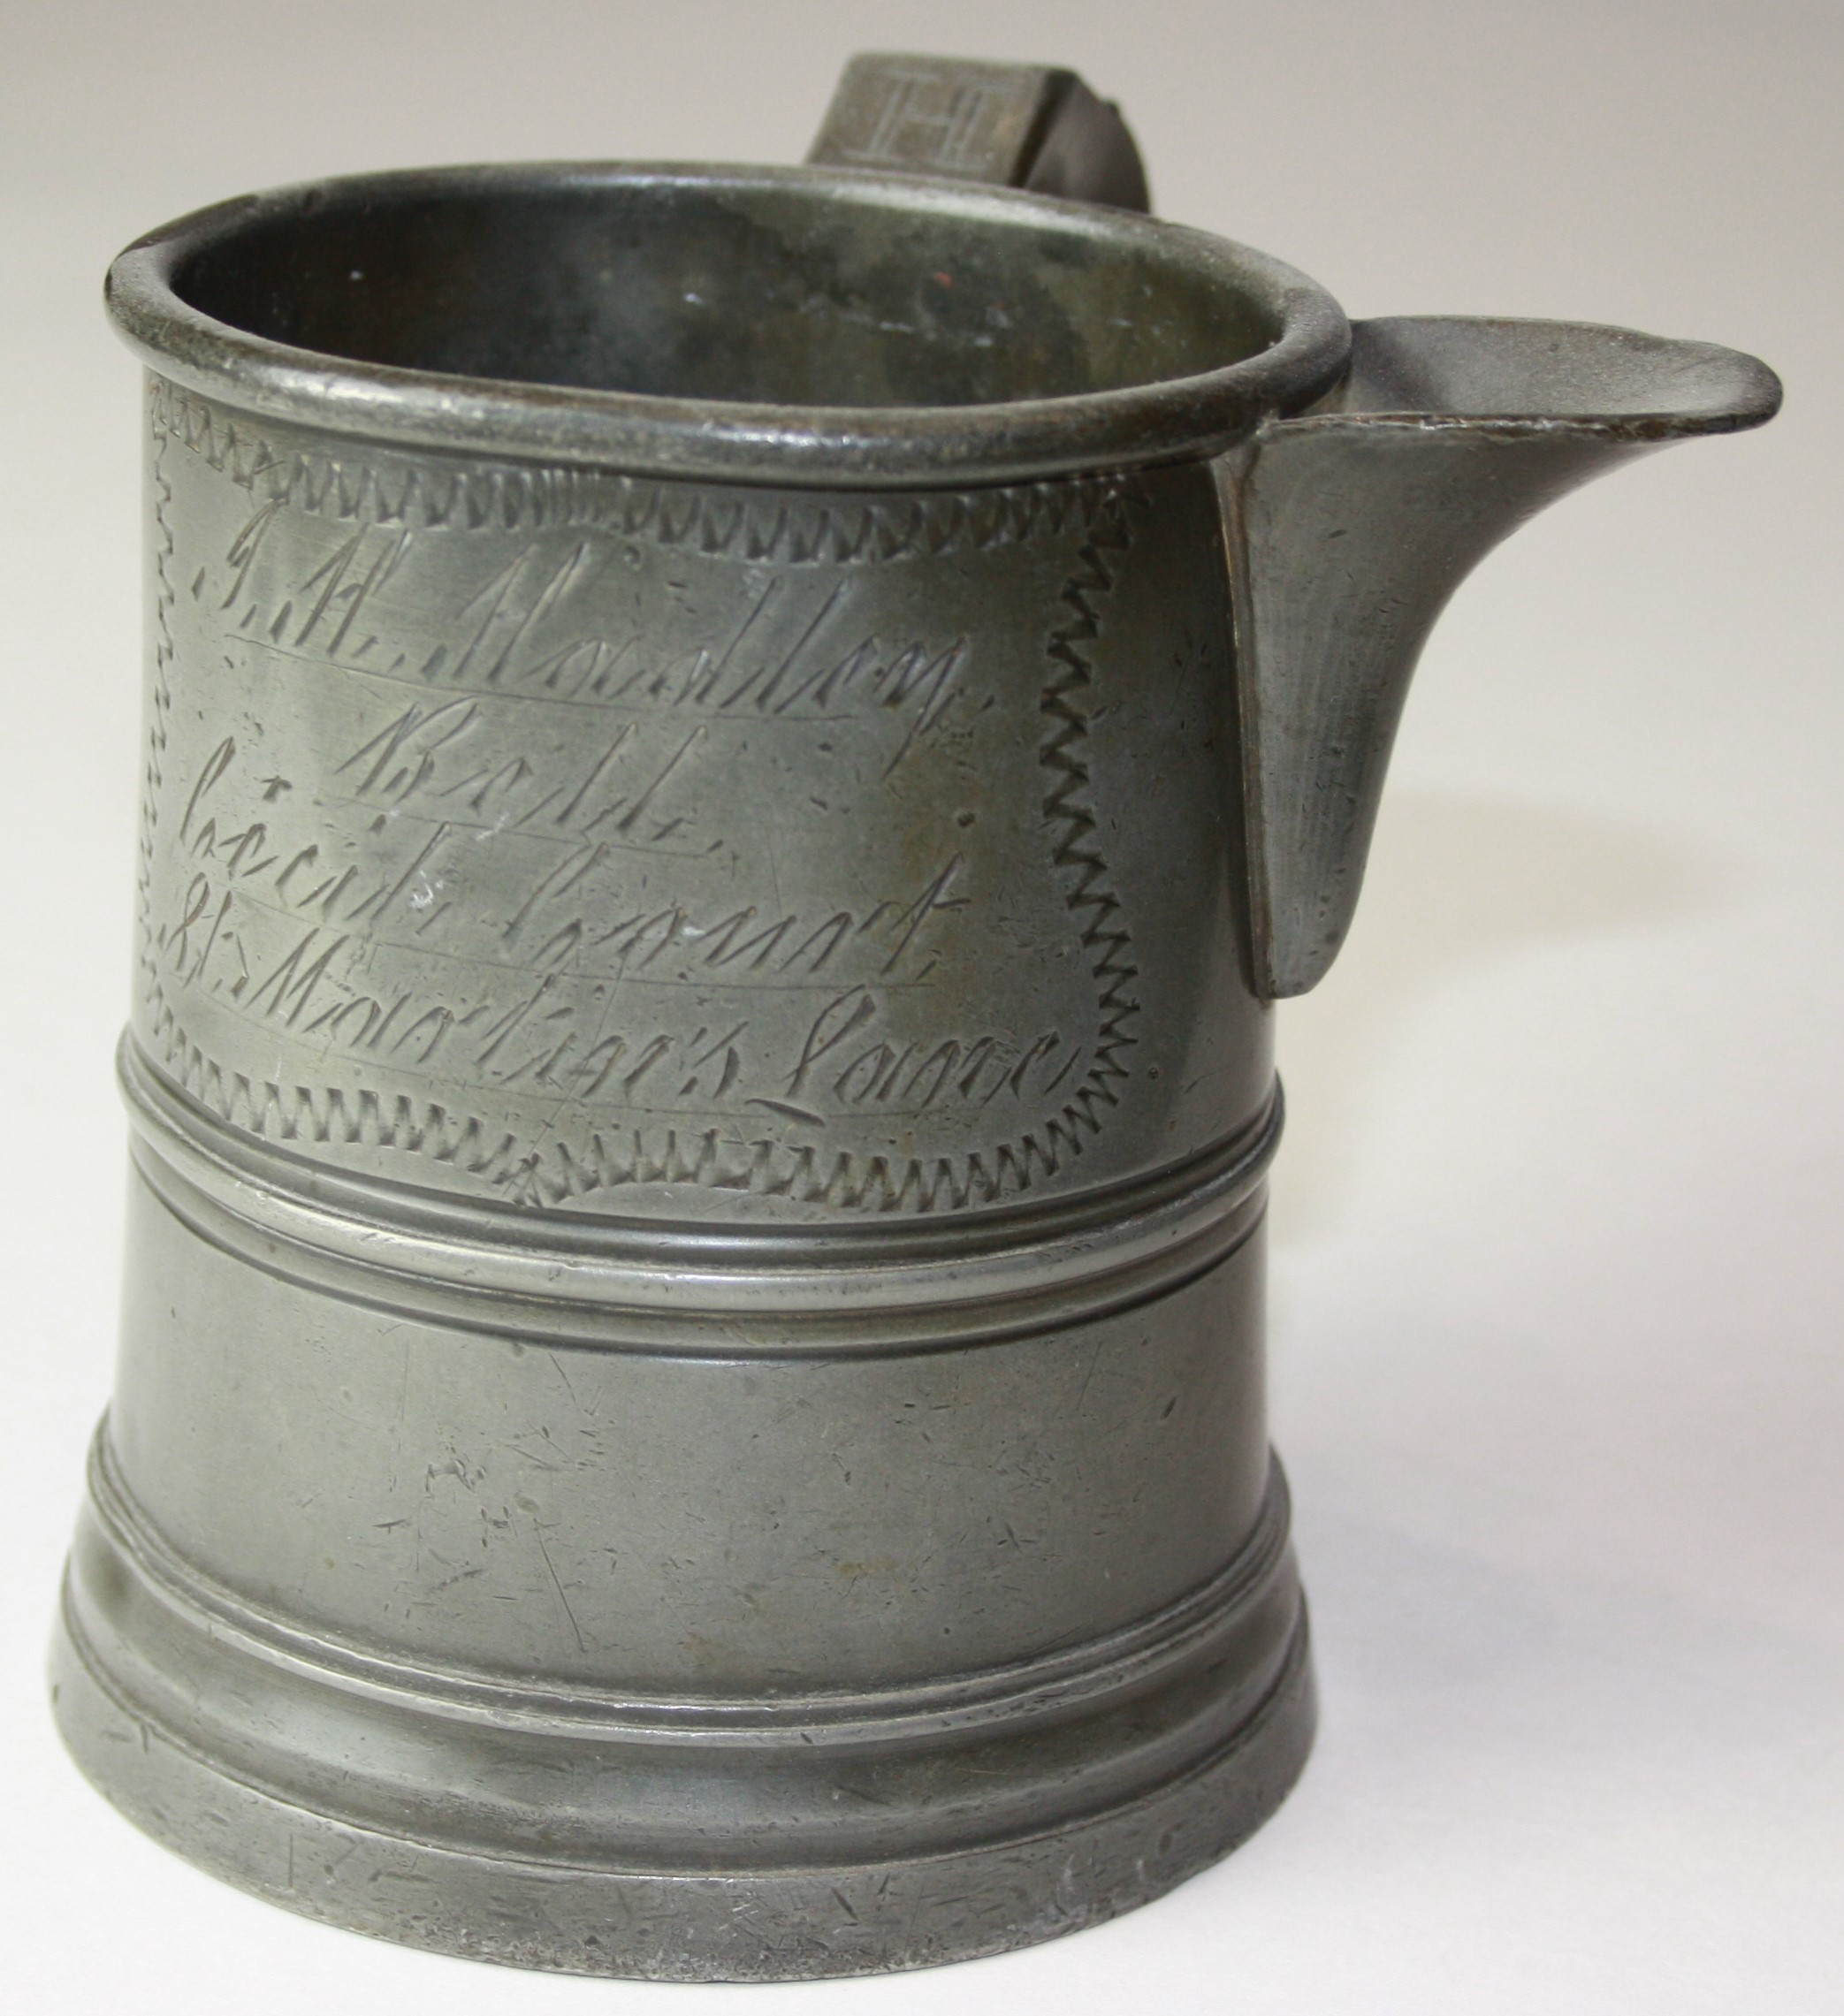 Mid 19th century pewter jug, engraved 'J H Hadley, Bell, Cecil Court, St Martin's Lane'. Joe Hadley seems to have been the landlord in the 1870s (from a passing refence to a bulldog club show in November 1878 held at the pub, in Hanes,  The New Complete Bulldog , 1966; p. 121)